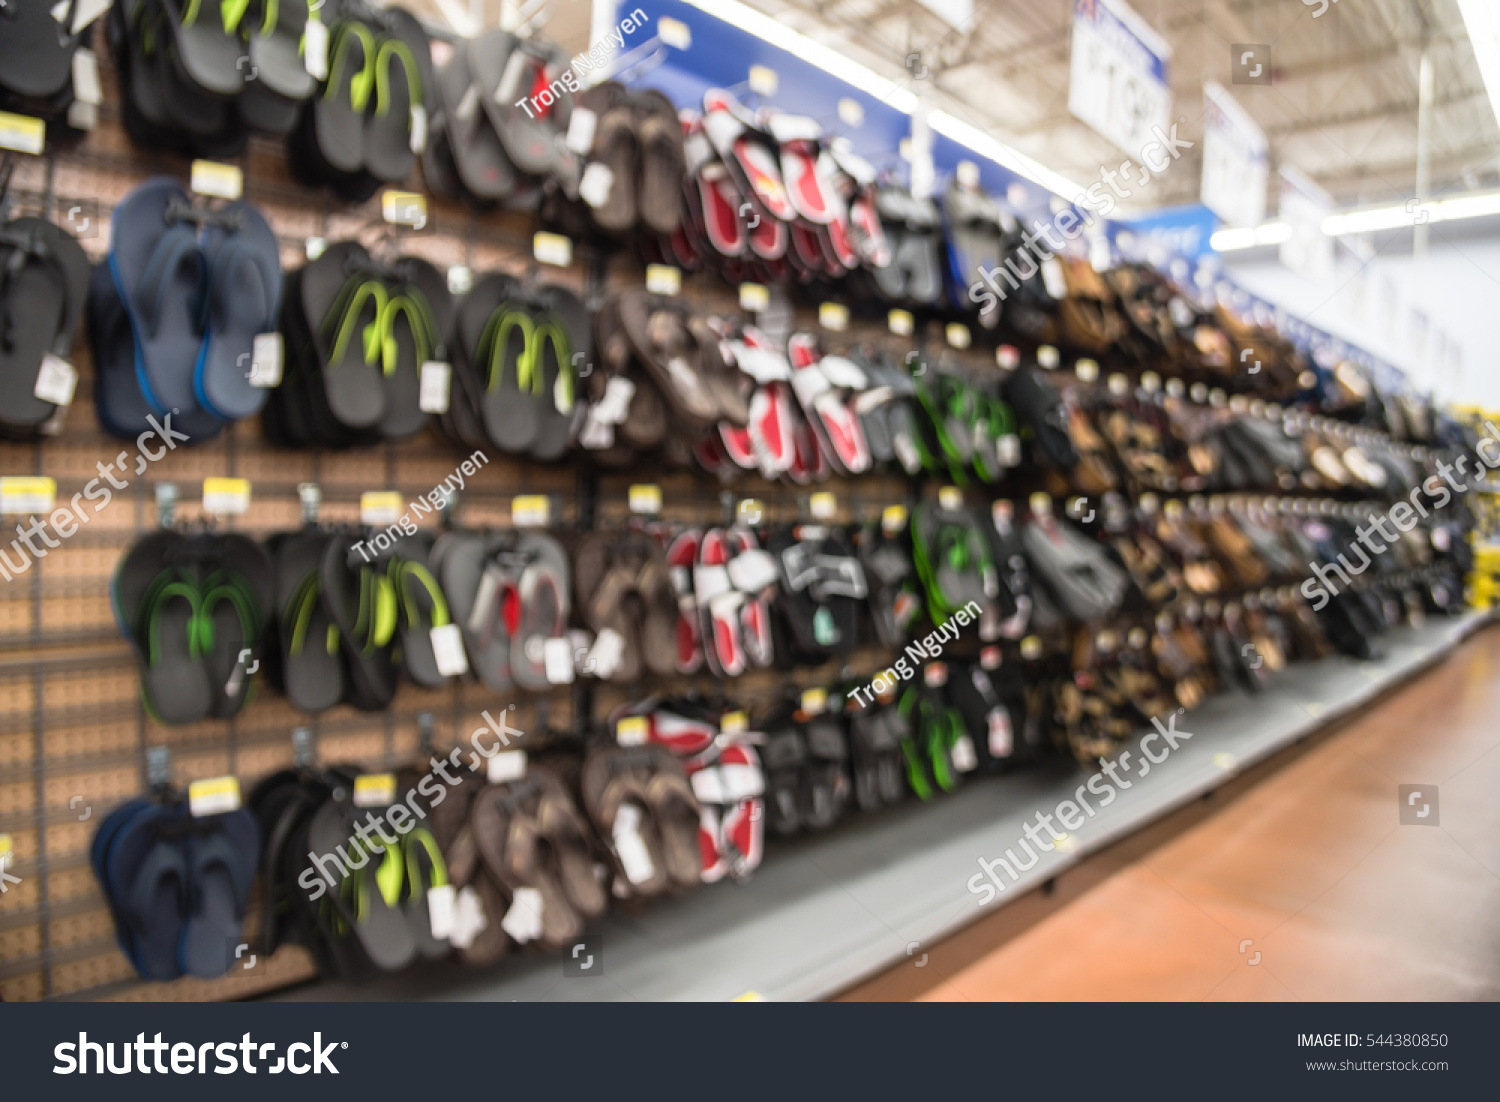 db206af6e160f Blurred variety of casual shoes and sandals on display at local retailer  store in Humble